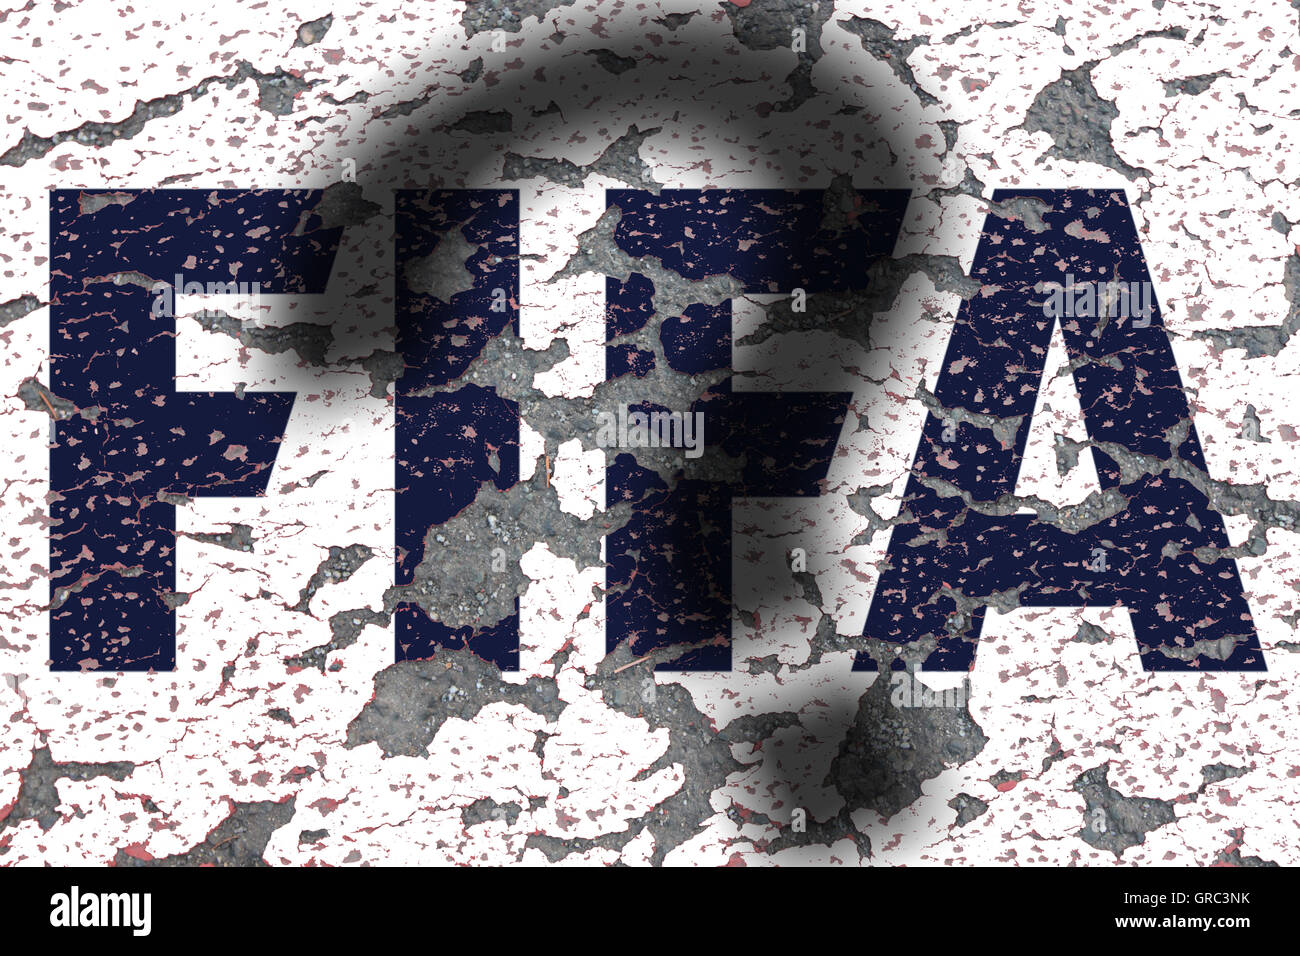 Eroding Fifa Sign With Question Mark - Stock Image